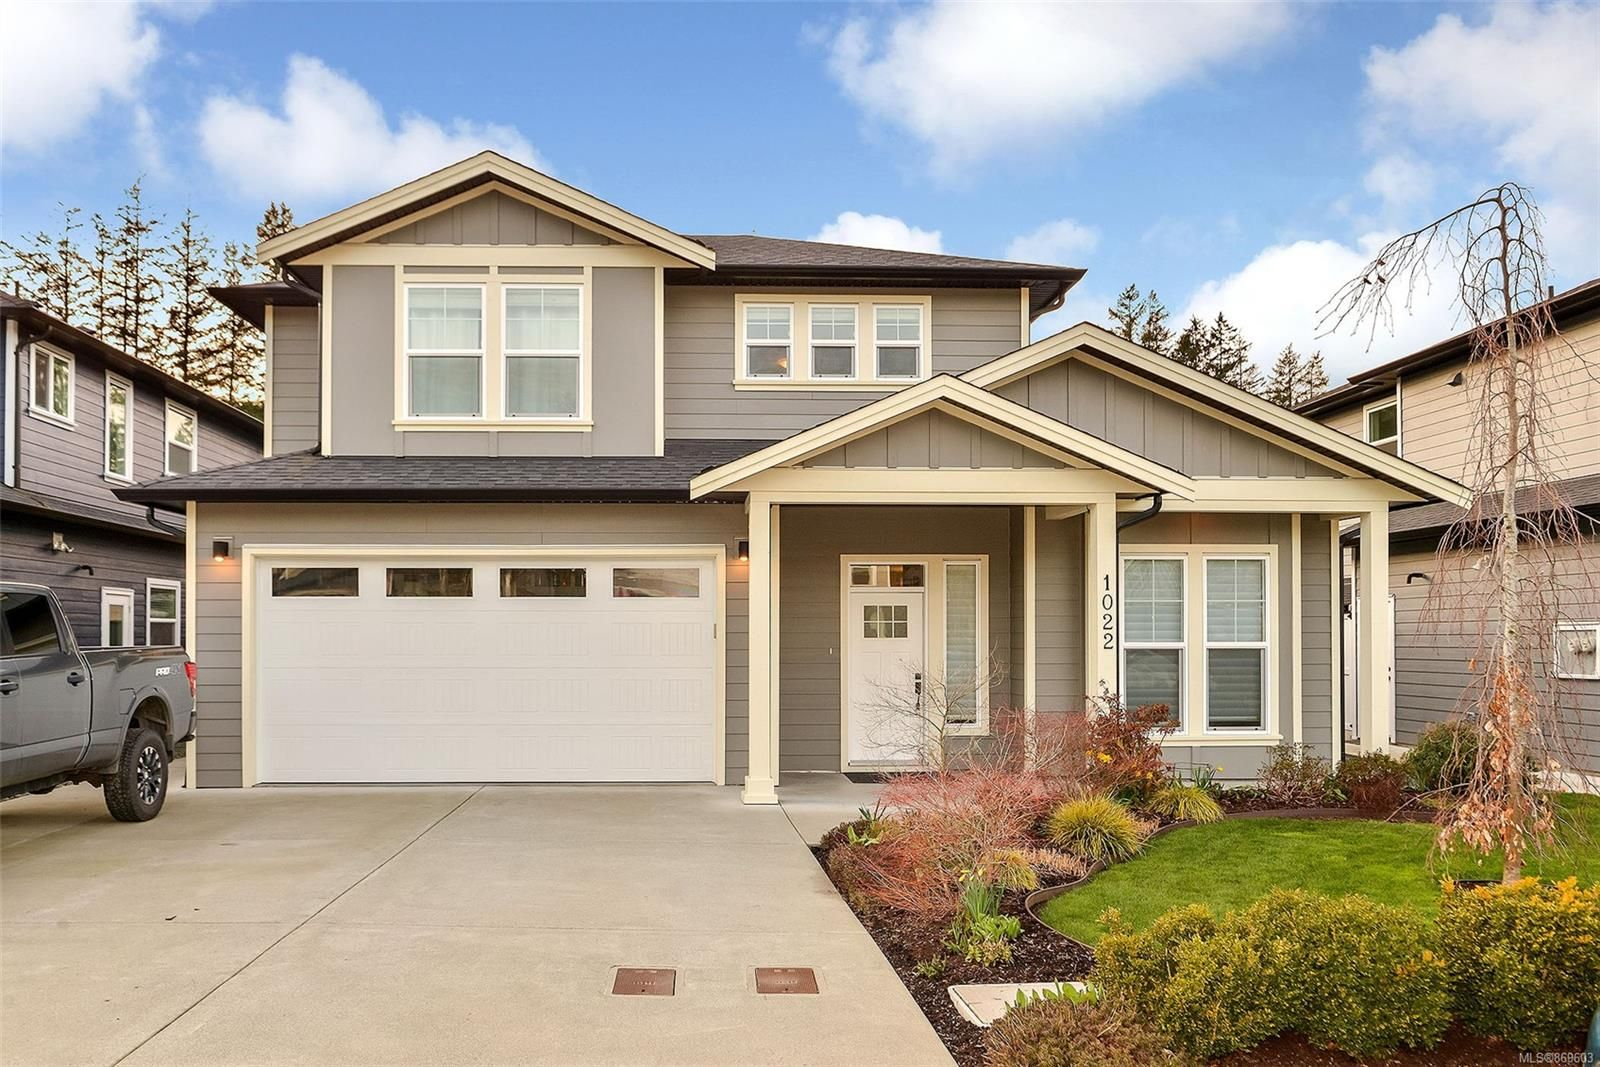 Main Photo: 1022 Torrance Ave in : La Happy Valley House for sale (Langford)  : MLS®# 869603